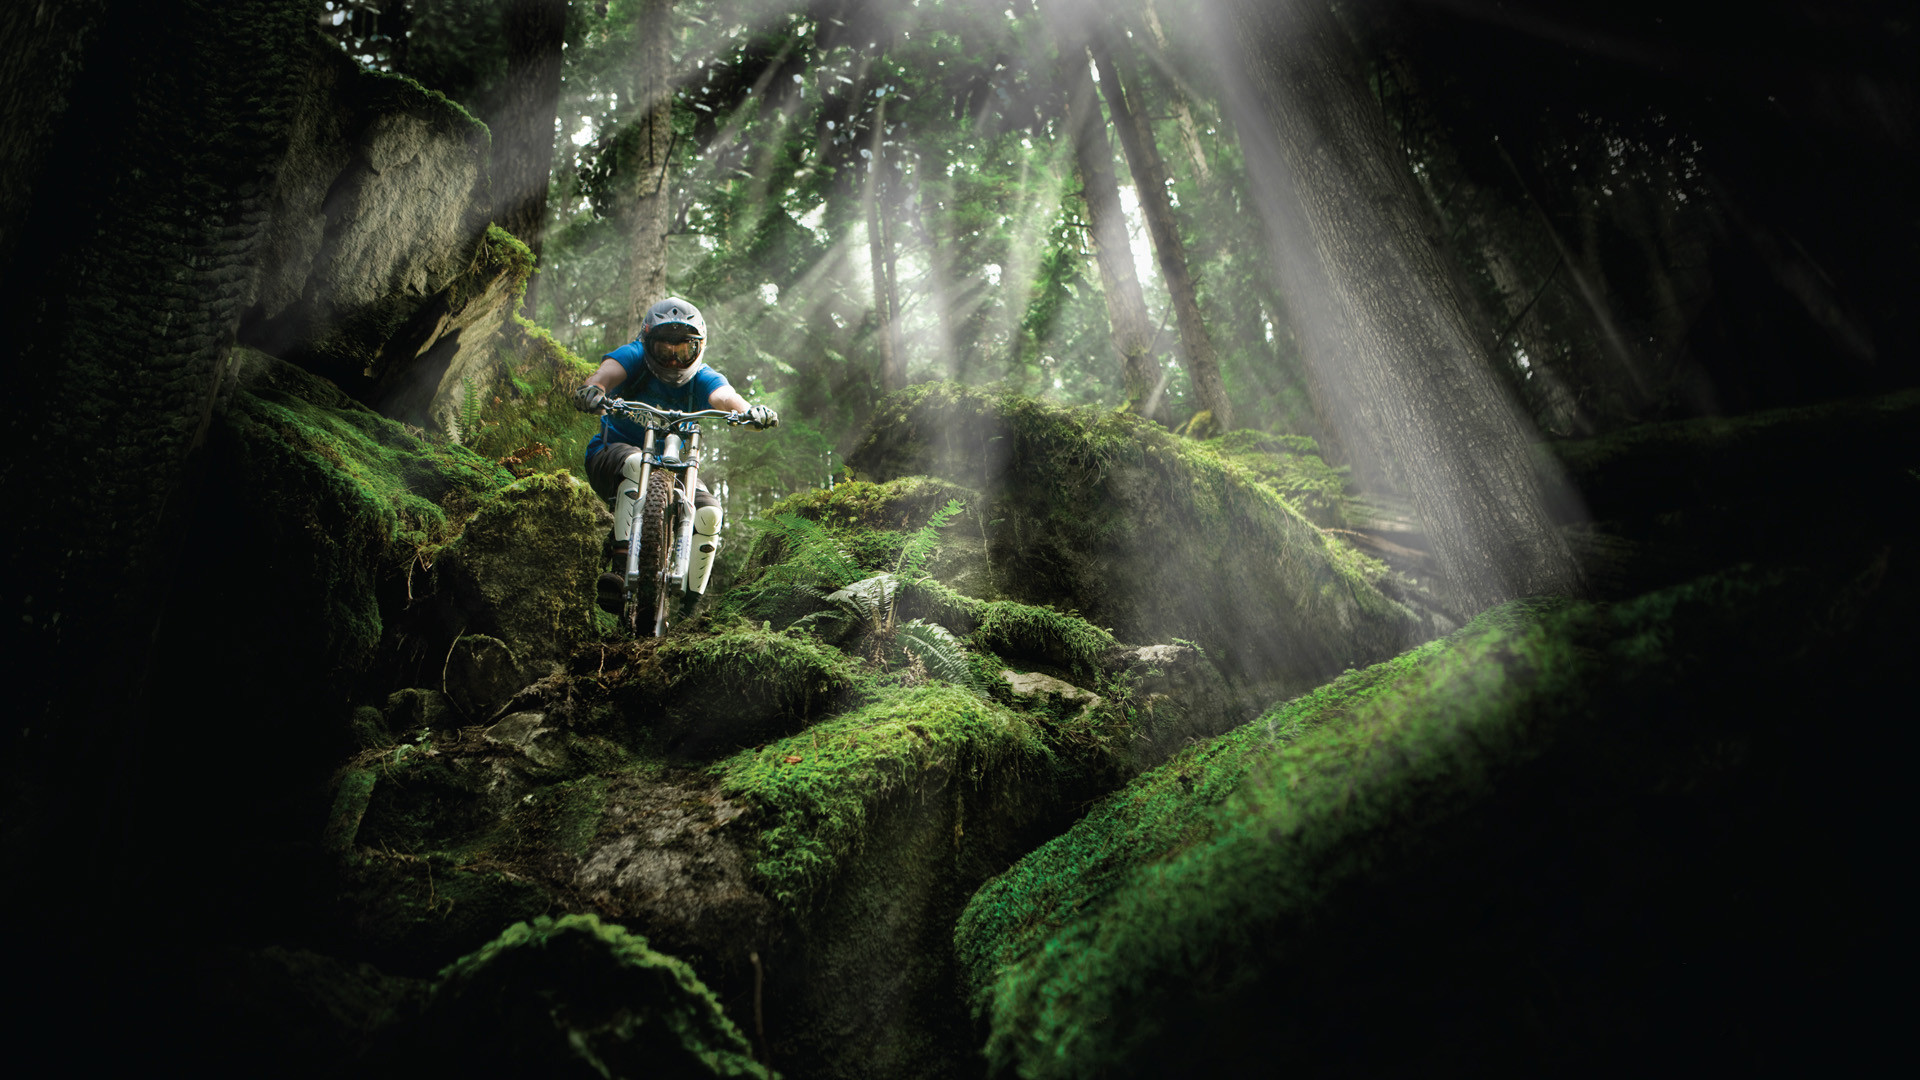 Downhill wallpaper Android Apps on Google Play 1400×900 Downhill Wallpaper  (38 Wallpapers) | Adorable Wallpapers | Desktop | Pinterest | Wallpapers  android …